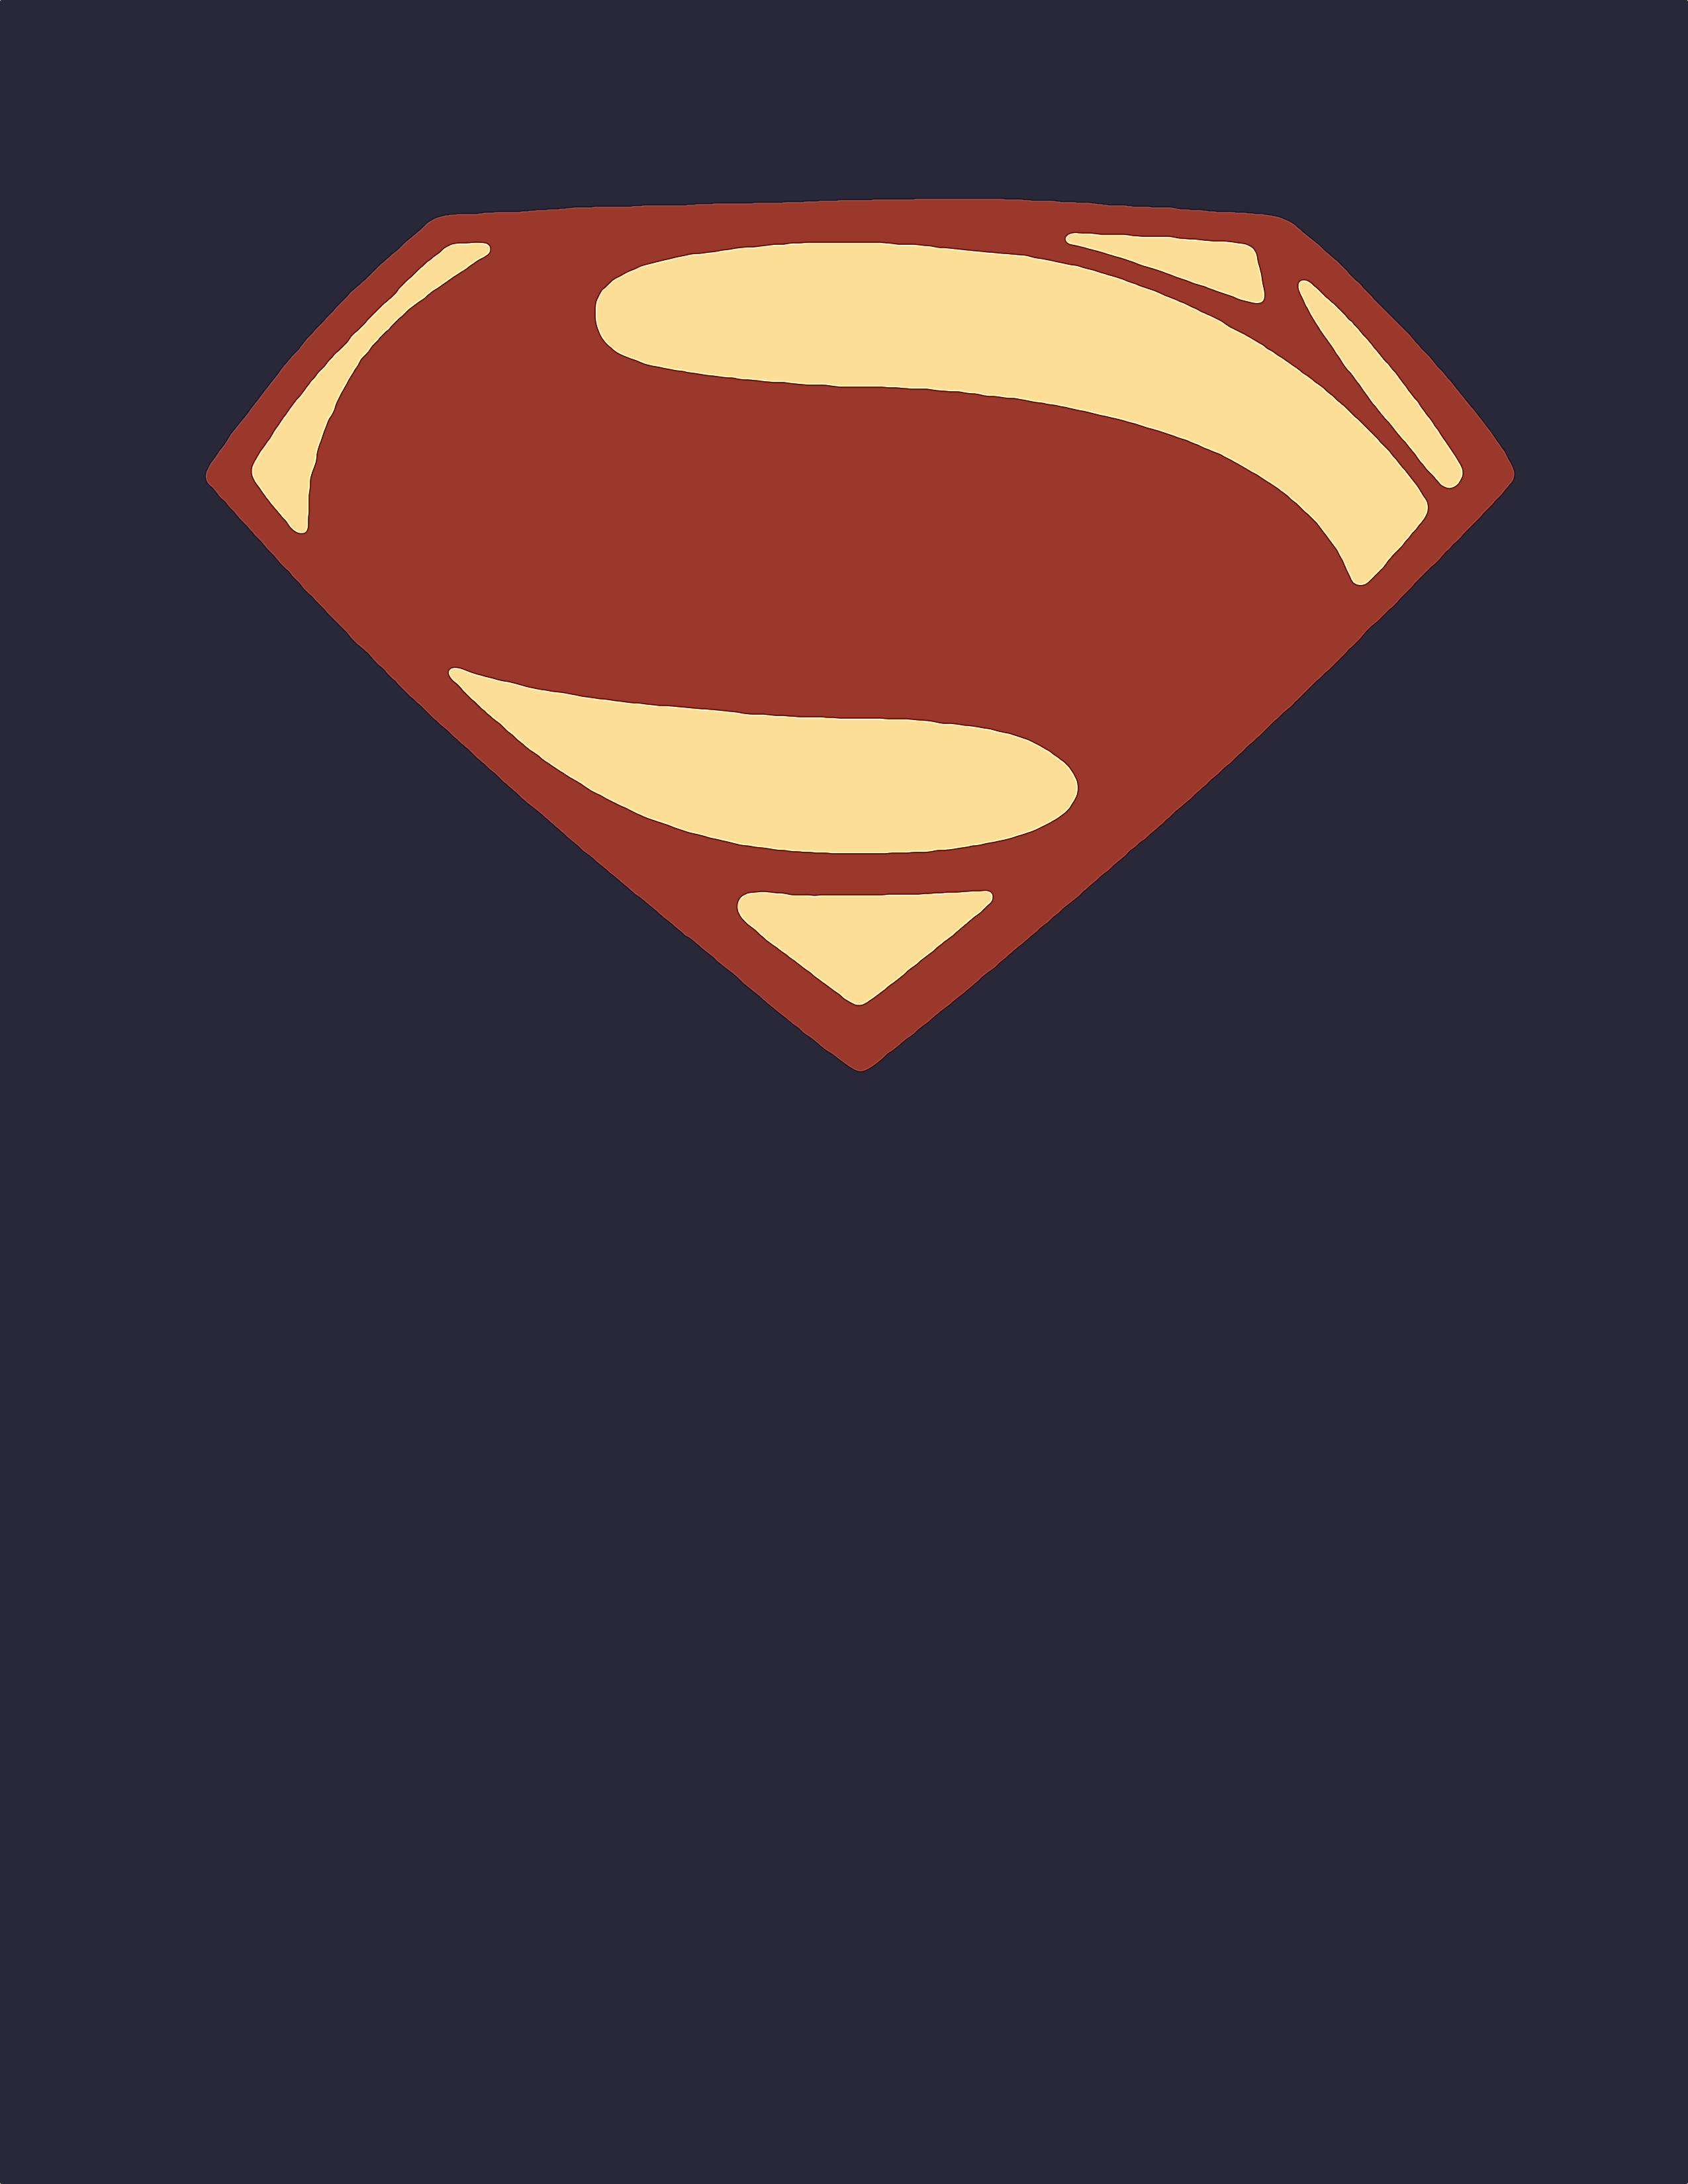 man of steel symbol of hope poster by moonillustrator on